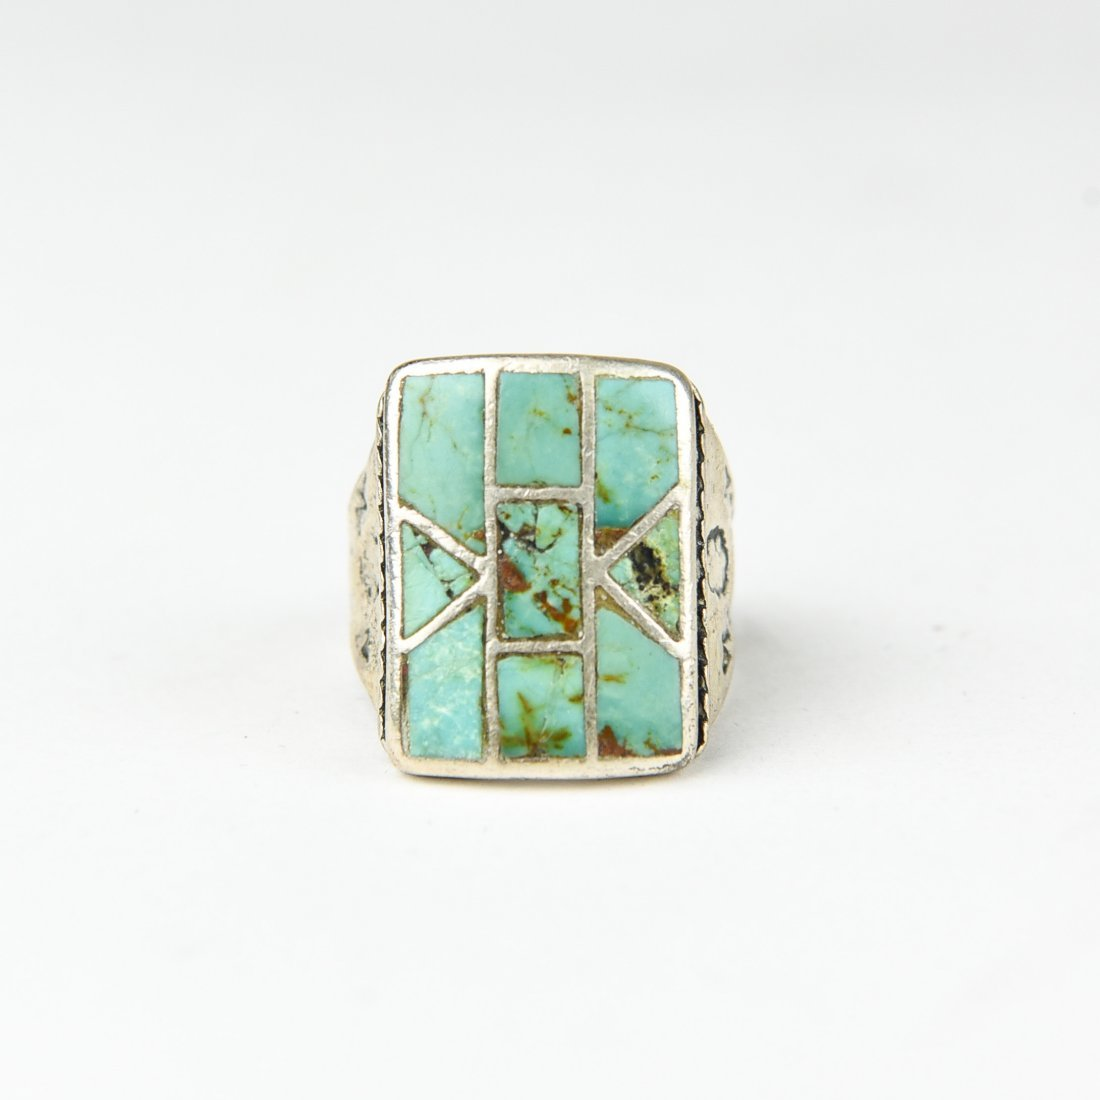 INLAID STERLING AND TURQUOISE RING